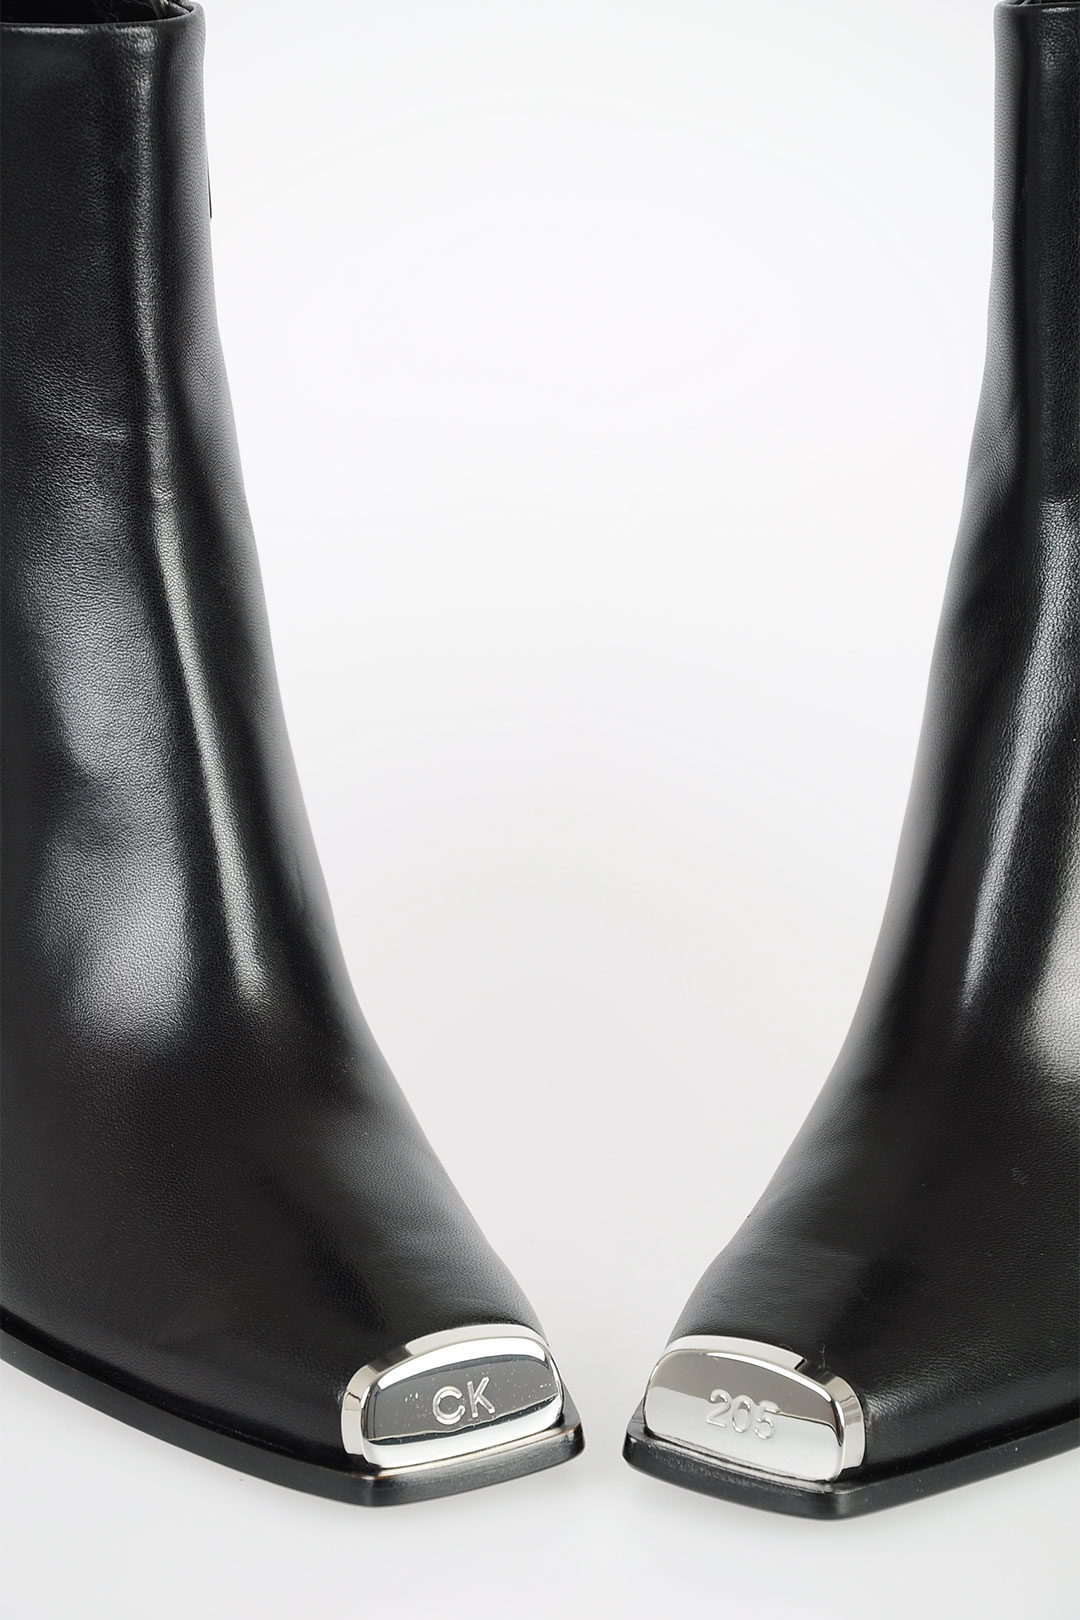 biggest discount cheap new collection Calvin Klein 205W39NYC 8cm Leather Ankle Boots women - Glamood Outlet